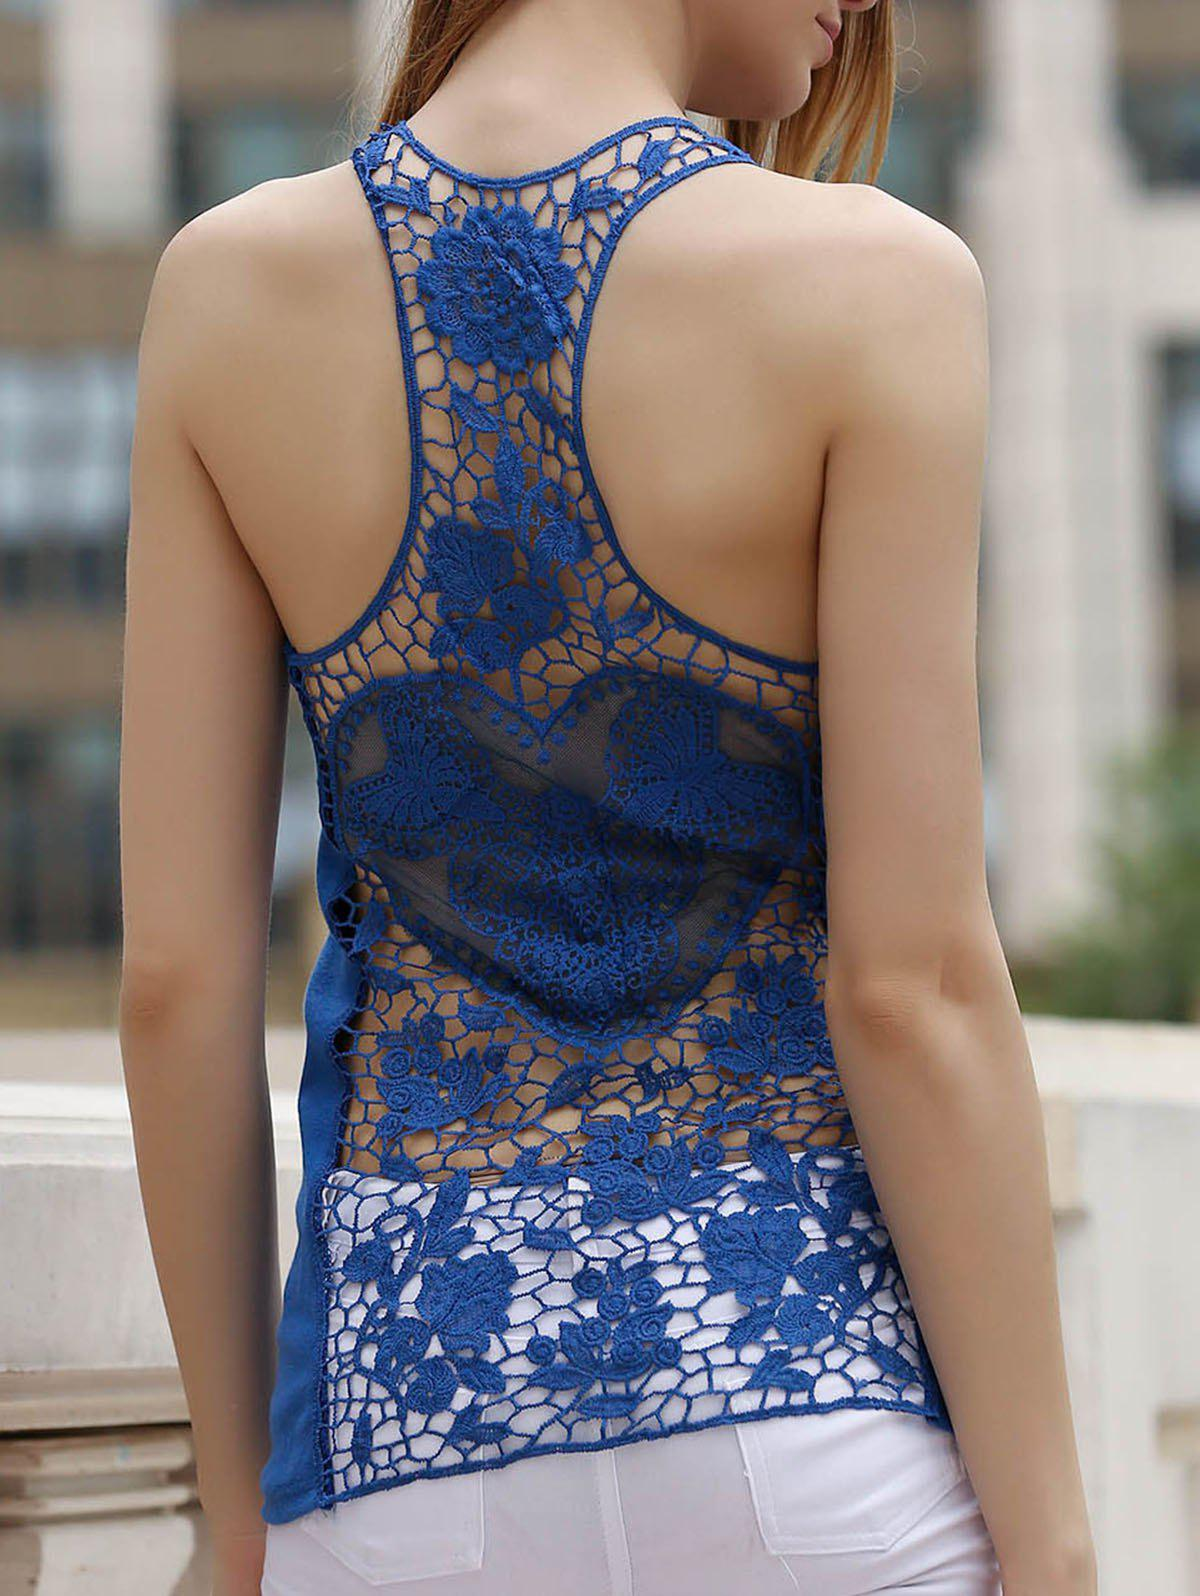 2018 see thru lace racerback tank top blue l in tank top for Shirts with see through backs